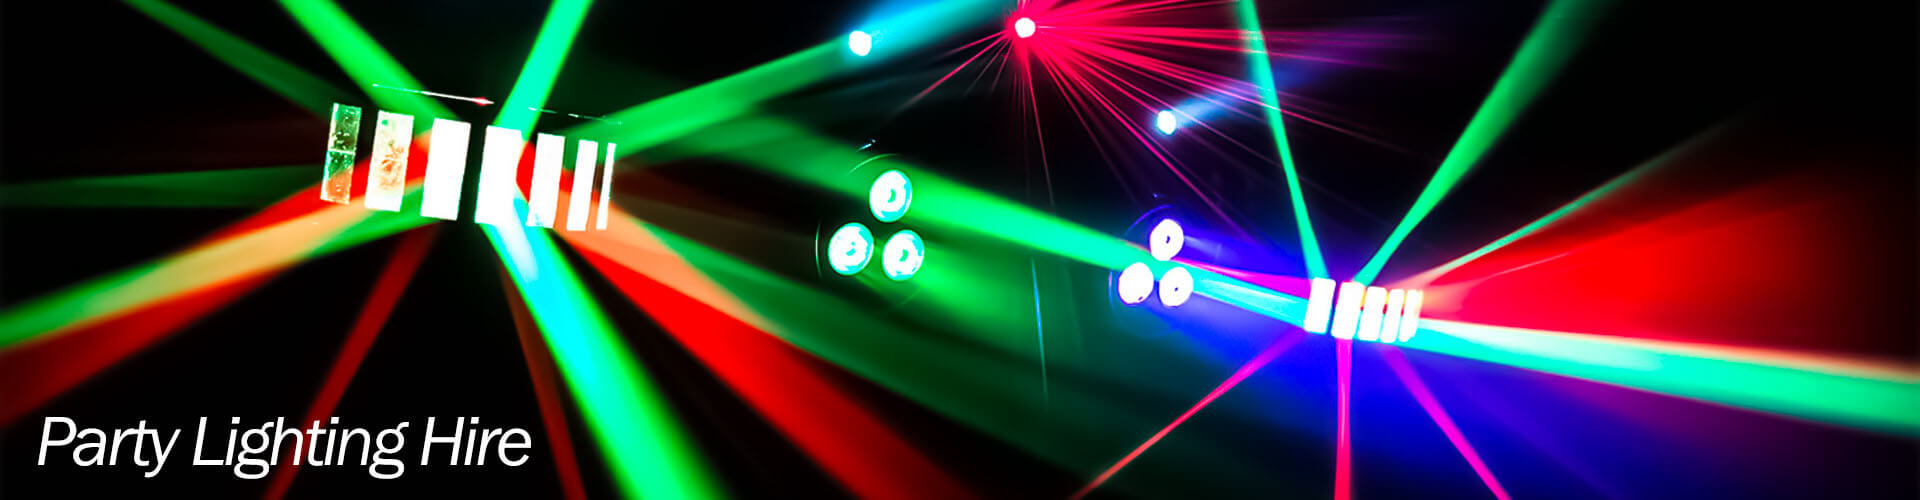 Party Lighting Hire Melbourne